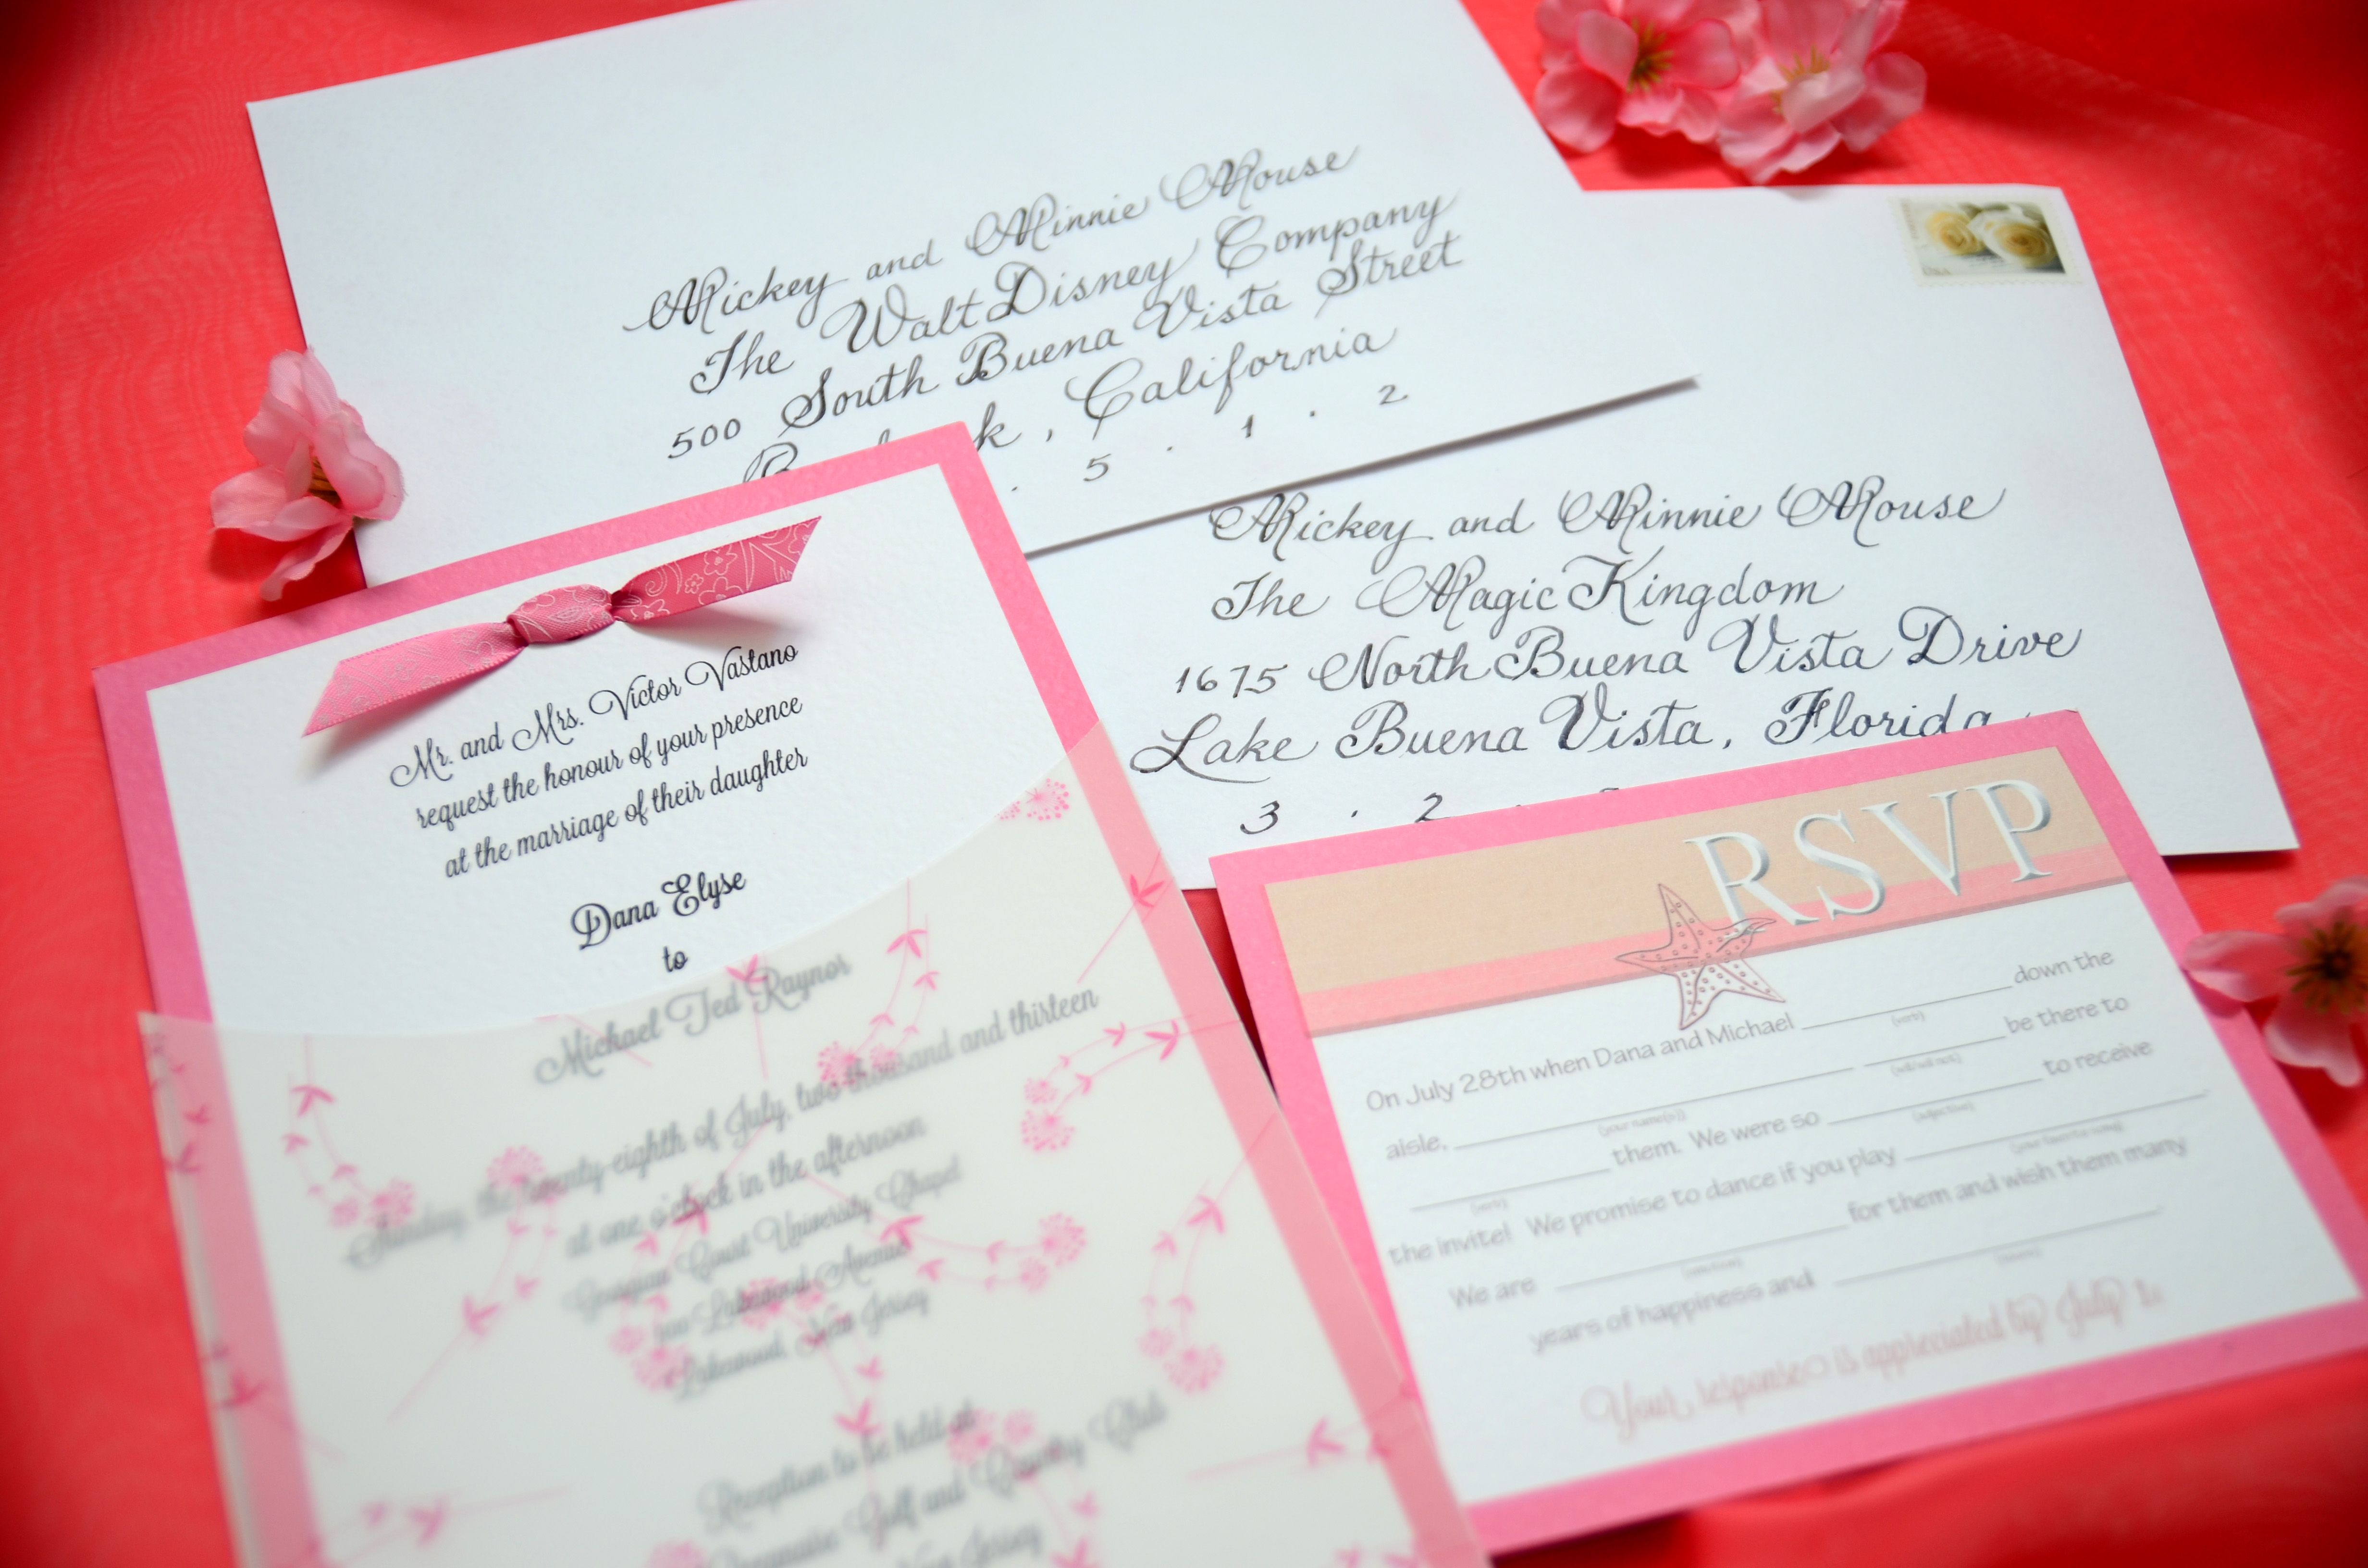 Extra Wedding Invitations? Invite These Celebrities to Get Signed ...